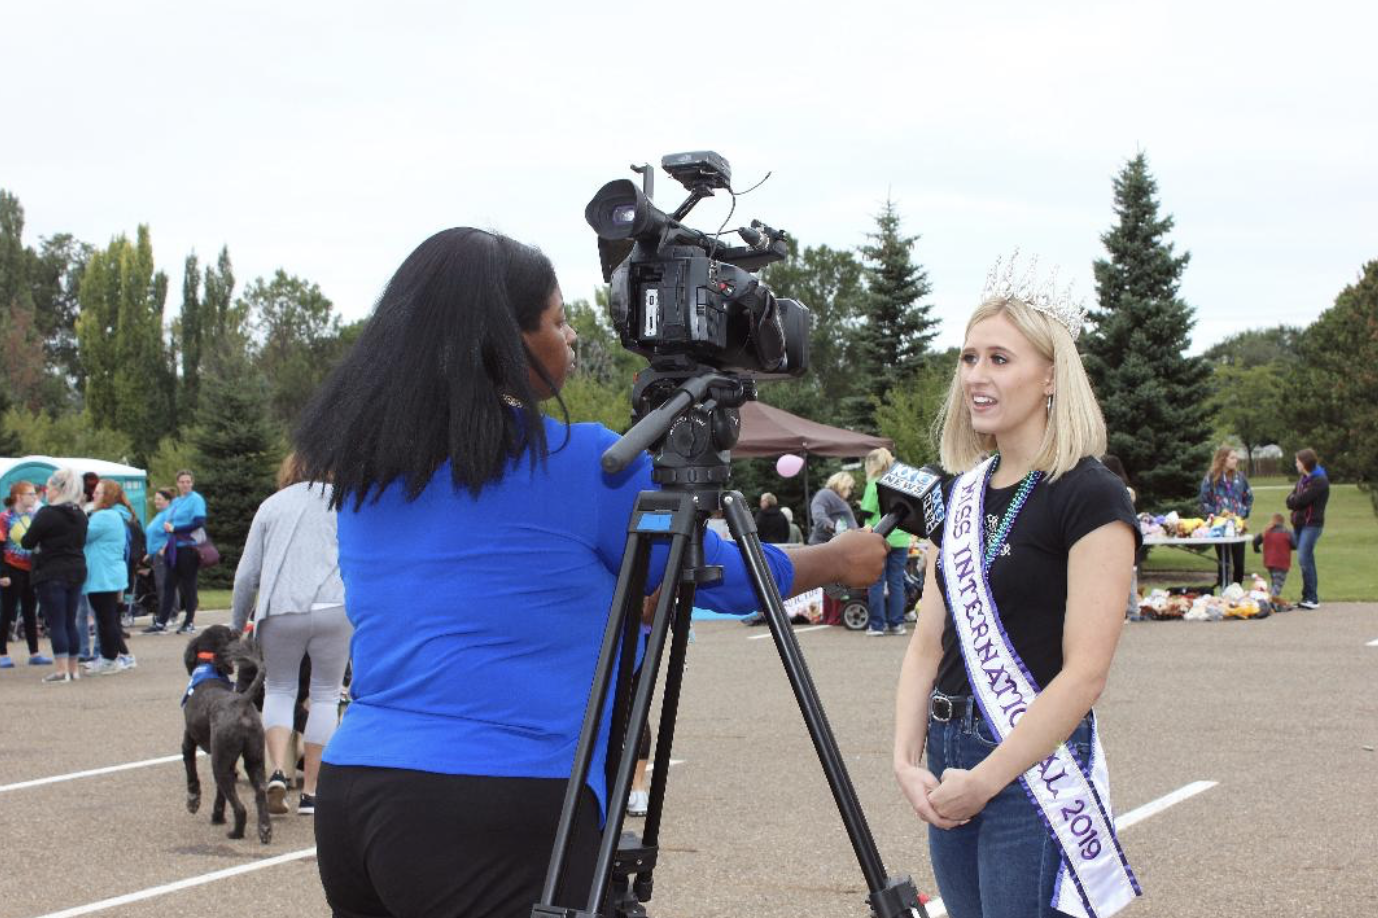 I was a guest speaker at the Bismarck Out of the Darkness walk for AFSP. While I was there I did an interview with a local news station and scattered hearts.